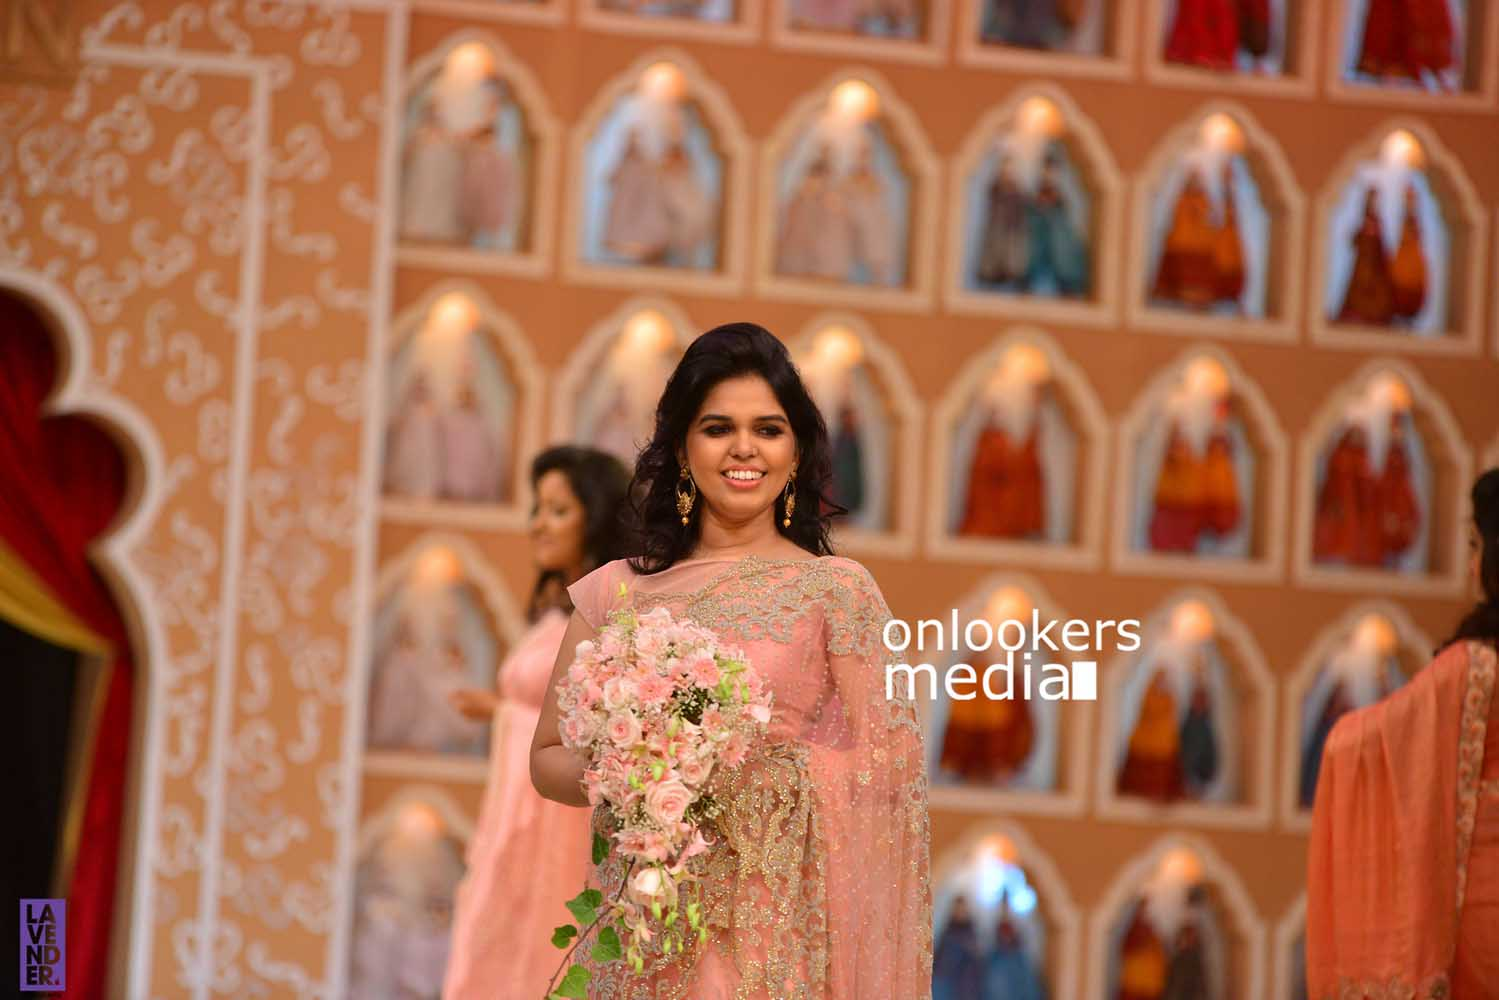 http://onlookersmedia.in/wp-content/uploads/2016/10/Beena-Kannan-Bridal-Show-2016-Stills-Photos-Seematti-43.jpg